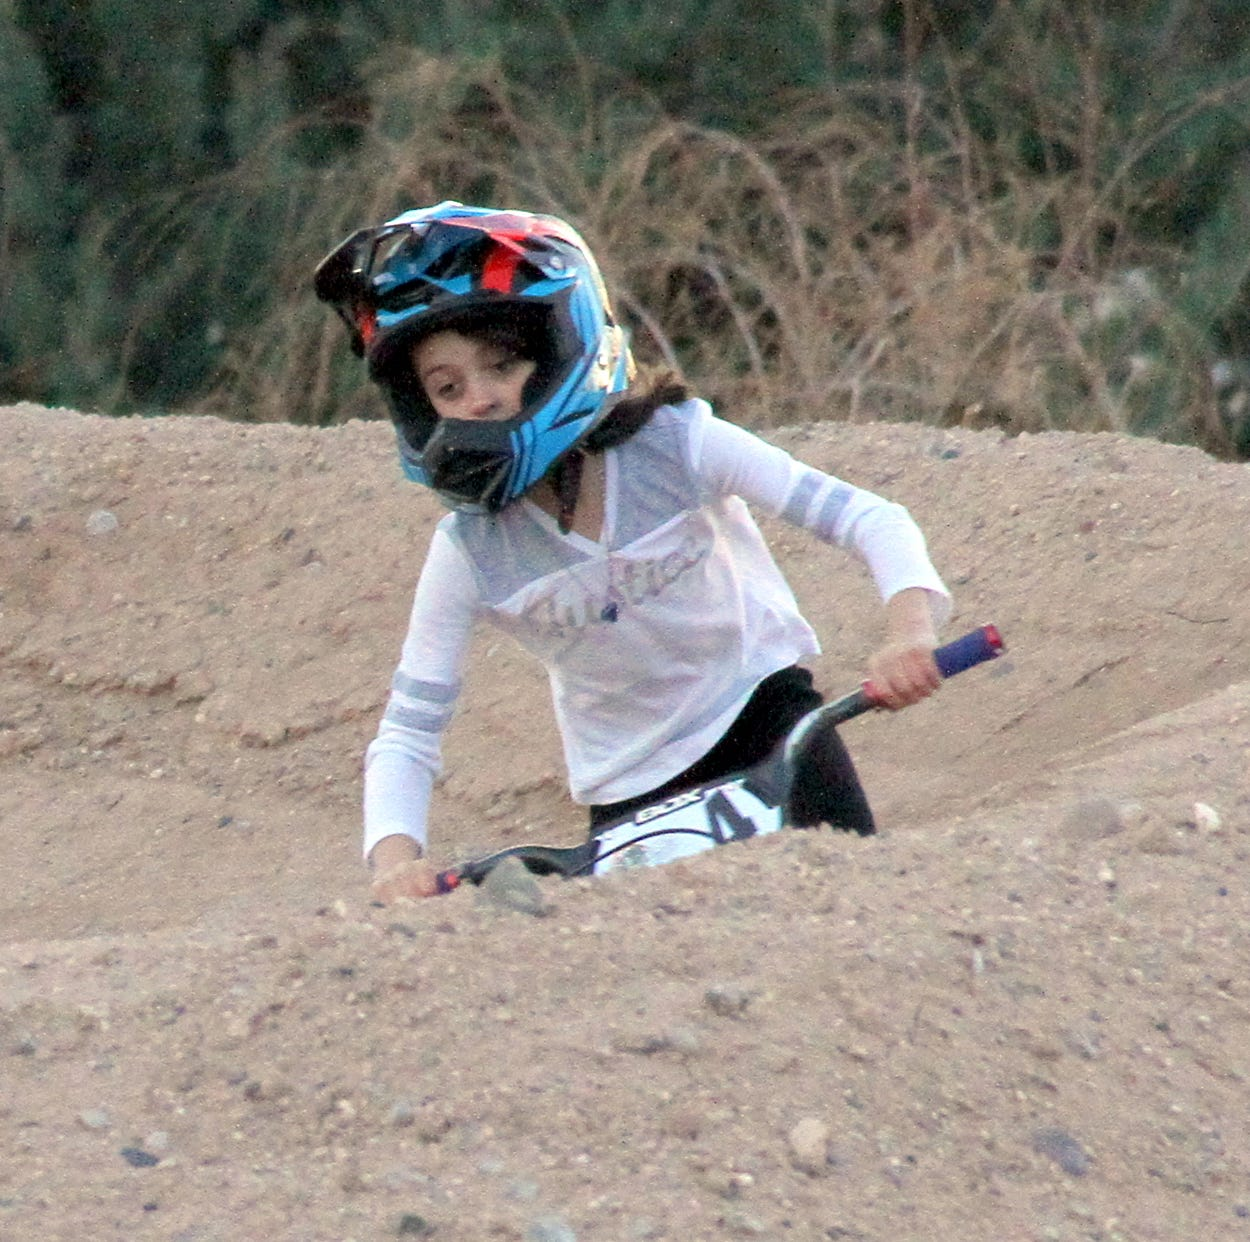 575 BMX Track launches grand opening Sunday in Deming, NM